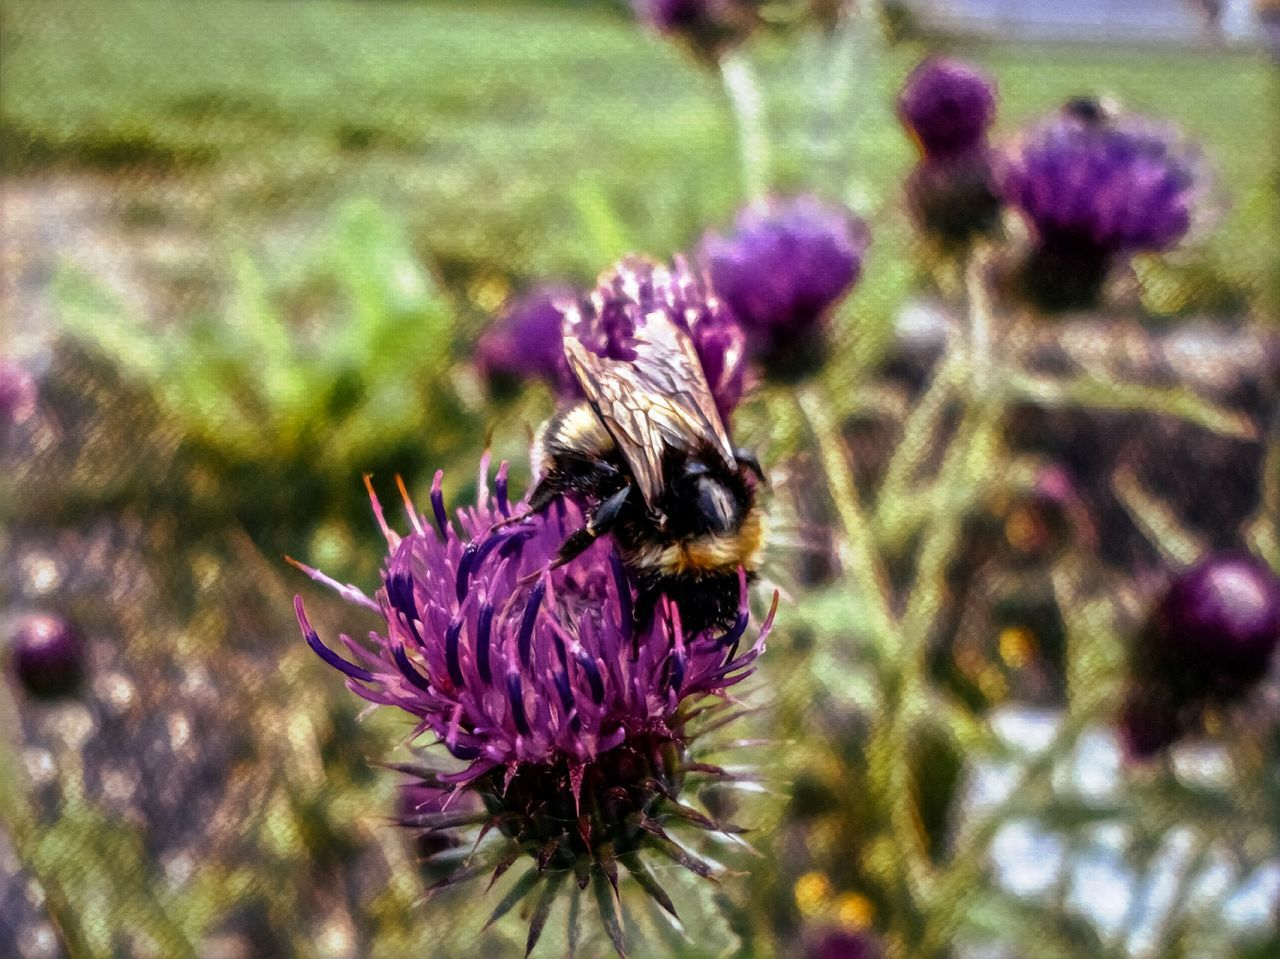 Bee on Thistle Purple Flower Nature Beauty In Nature Capture The MomentClose-up Outdoors No People Walking Around Landscape Taking Photos Selective Focus Relaxing Nature_collection Nature I ♥ Photography Hello World Hanging Out First Eyeem Photo EyeEm Best Shots EyeEm Best Edits Eye4photography  Exceptional Photographs Enjoying Life Check This Out